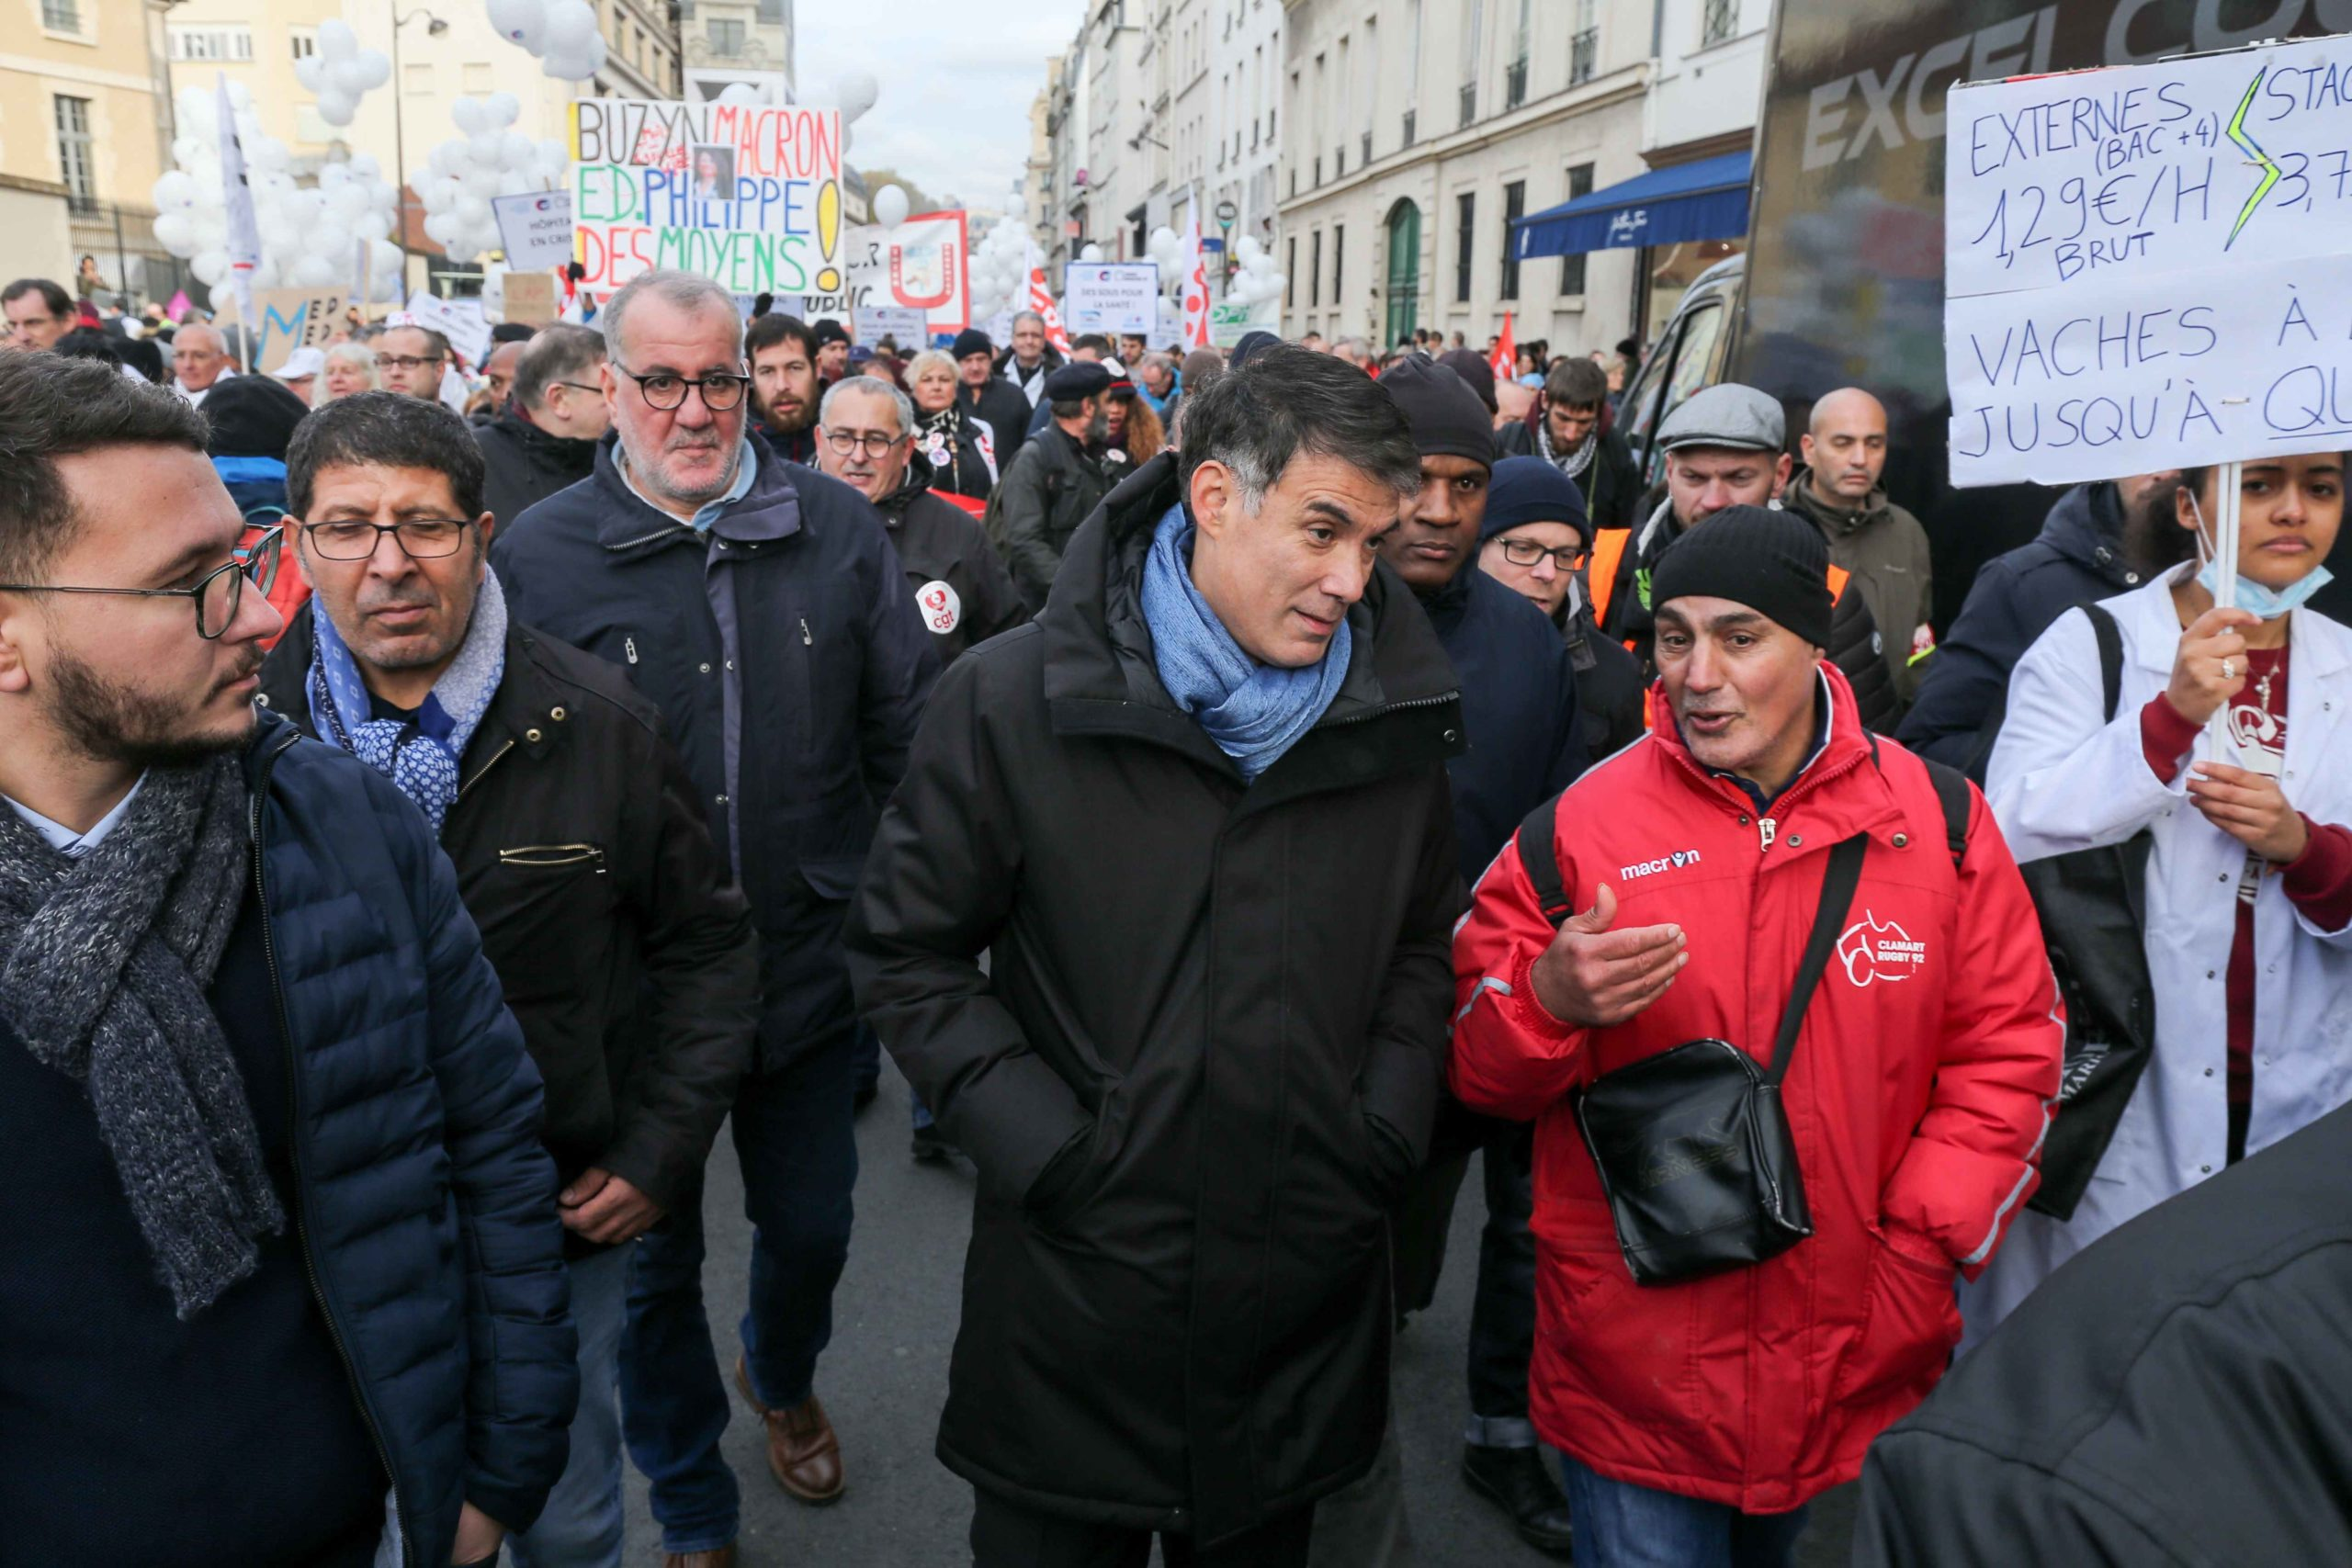 First secretary of the French Socialist Party (PS) Olivier Faure (3R) takes part in a demonstration of professionnals from french public hospitals in Paris on November 14, 2019, for another day of action as part of a nationwide day of protest calling for a